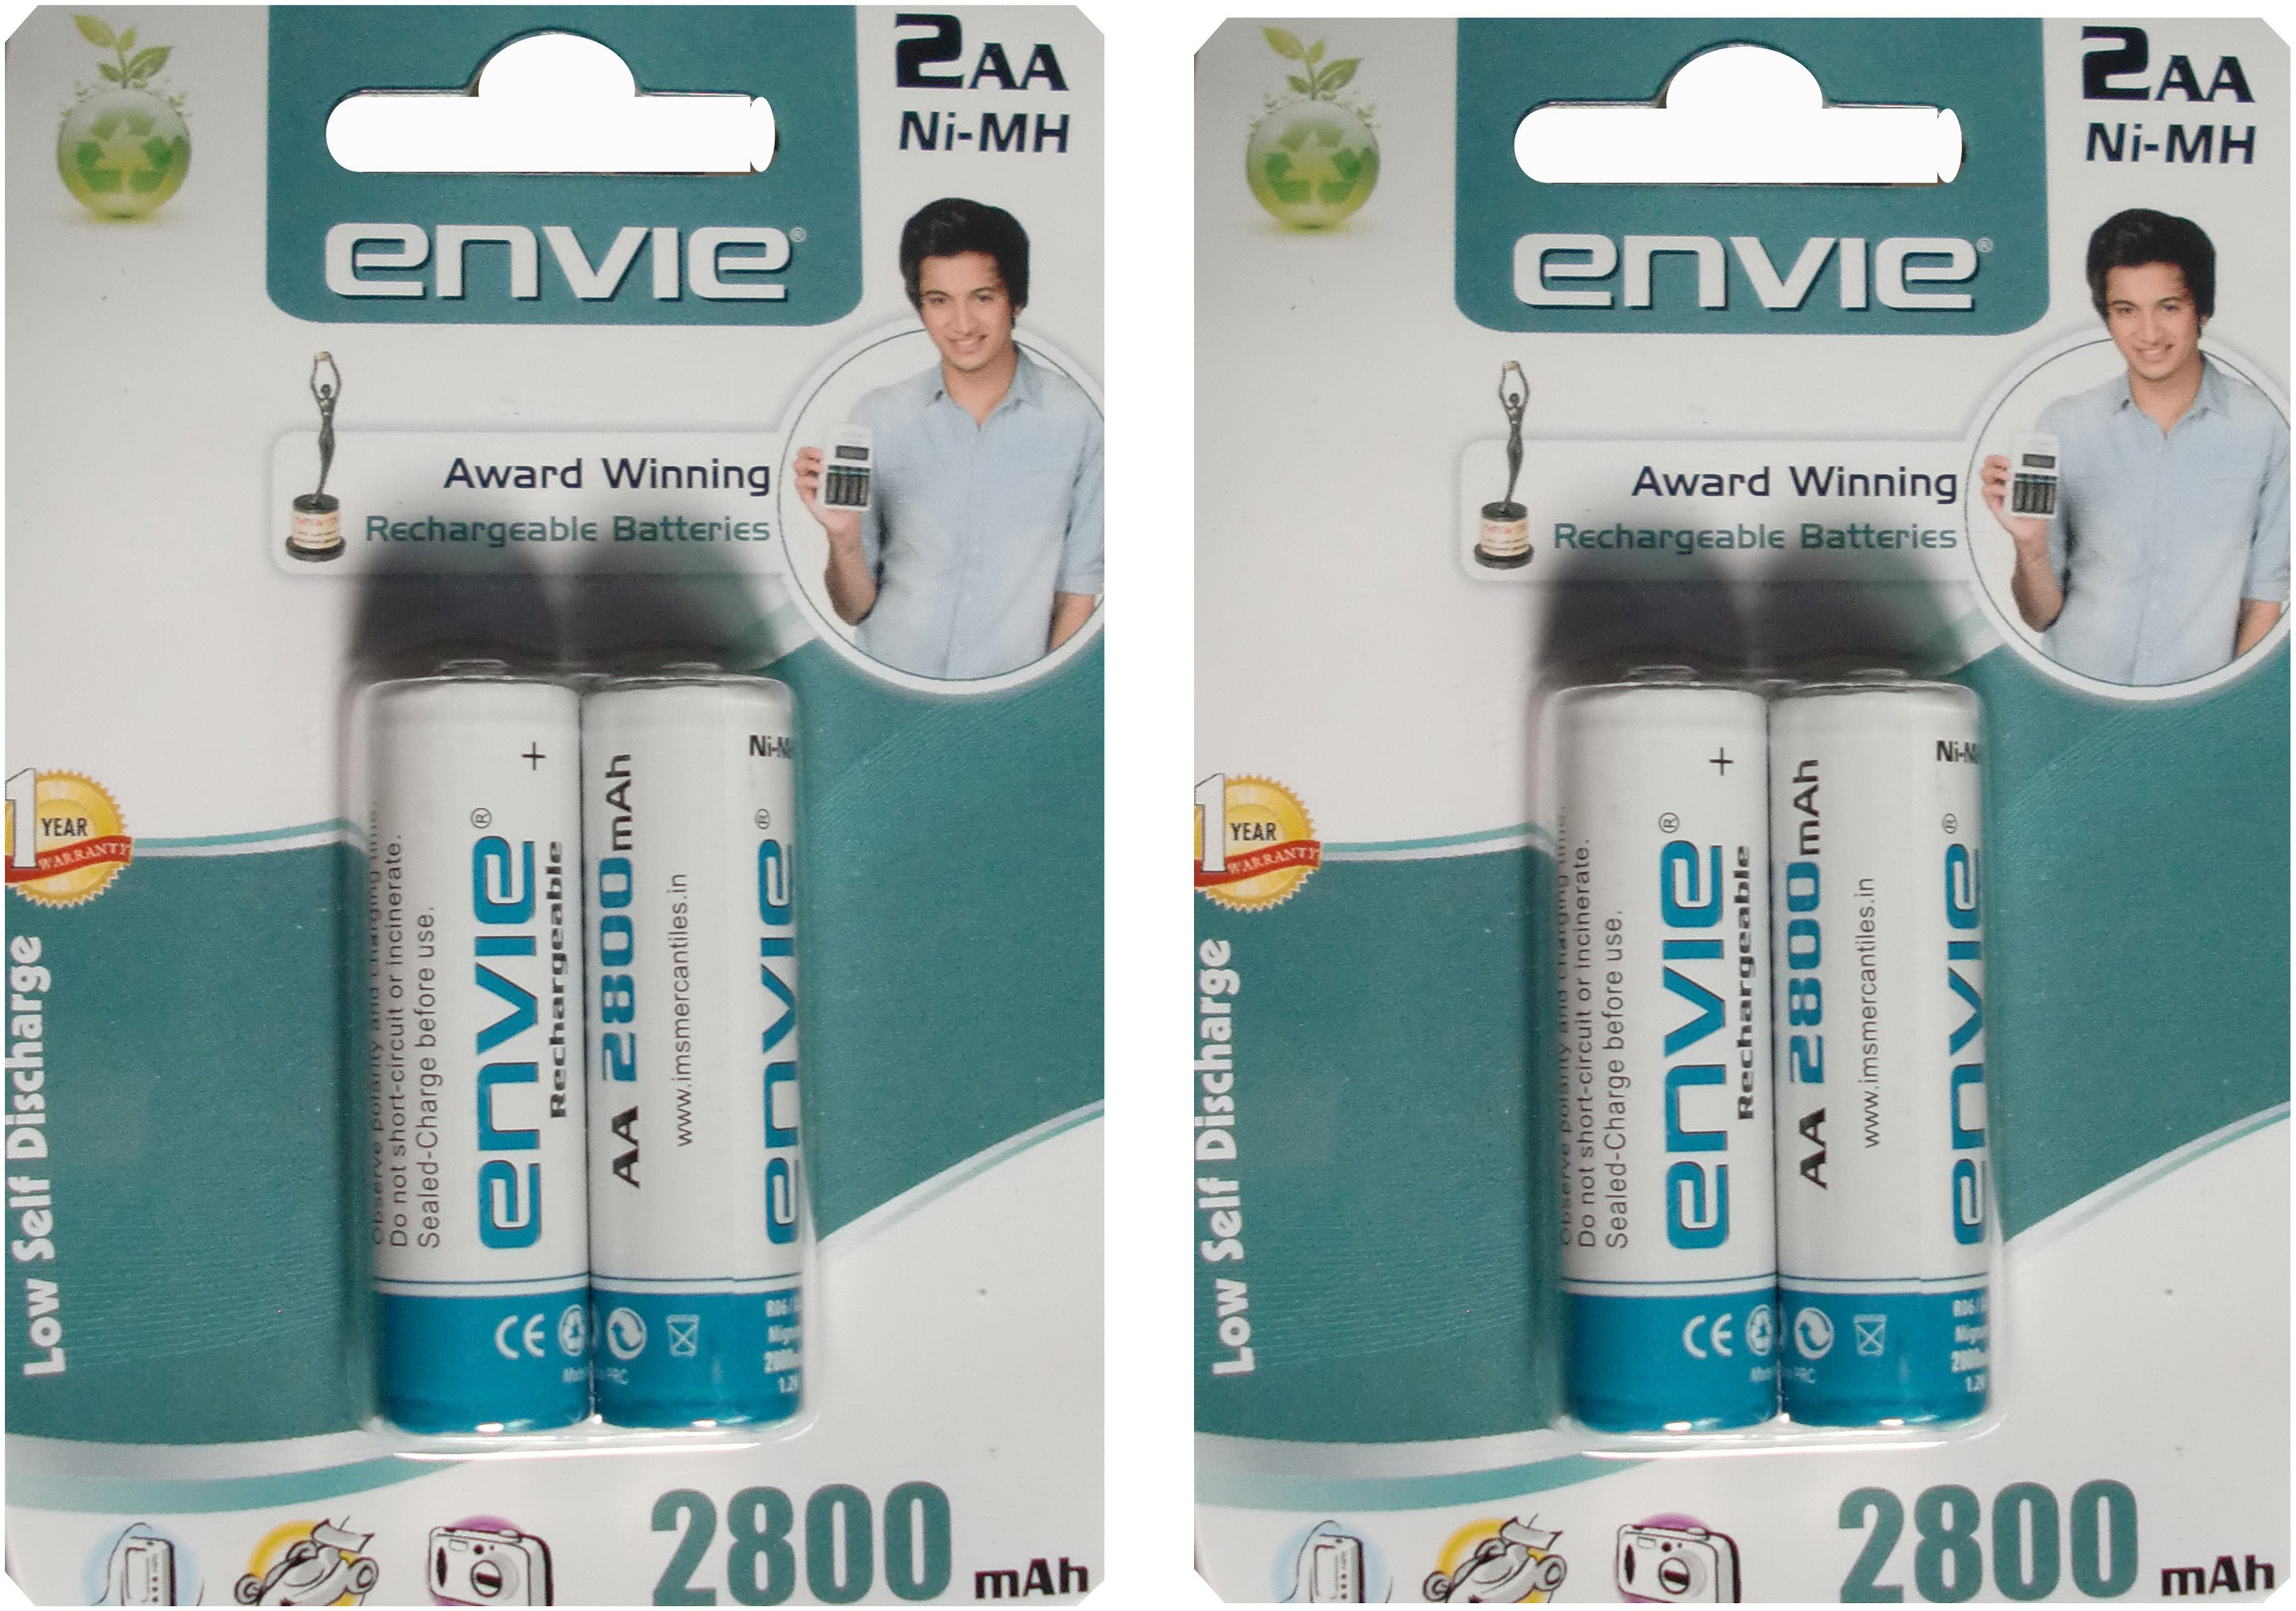 Envie AA 2800 mA 1.2 V 4 Pcs. Rechargeable Ni-MH Battery